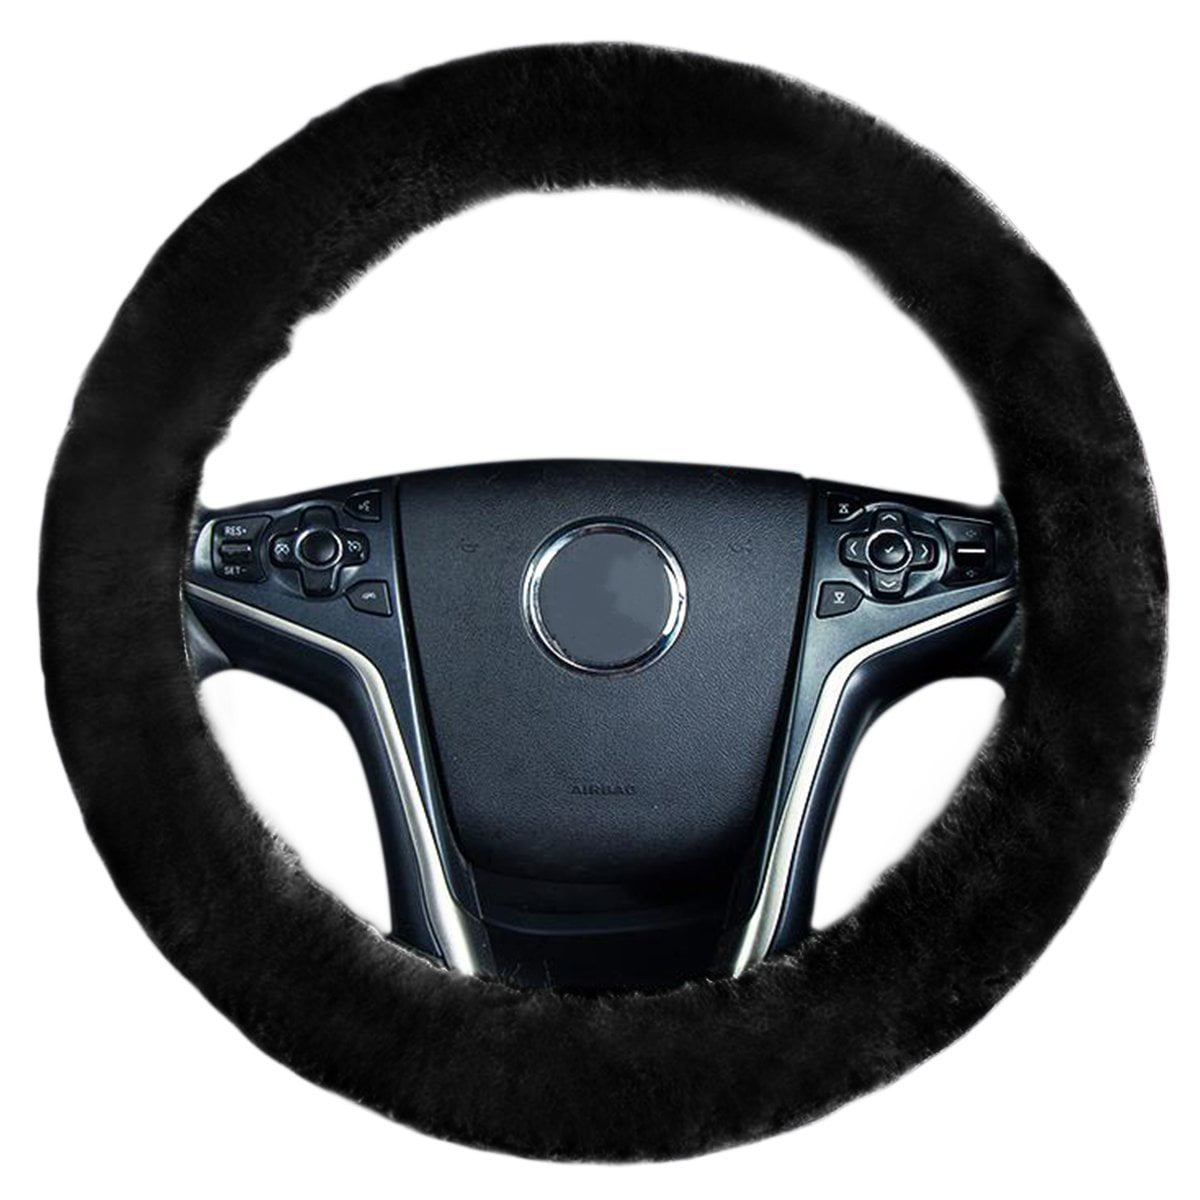 faux sheepskin steering wheel cover zone tech plush stretch onfaux sheepskin steering wheel cover zone tech plush stretch on vehicle steering wheel cover black classic car wheel protector walmart com